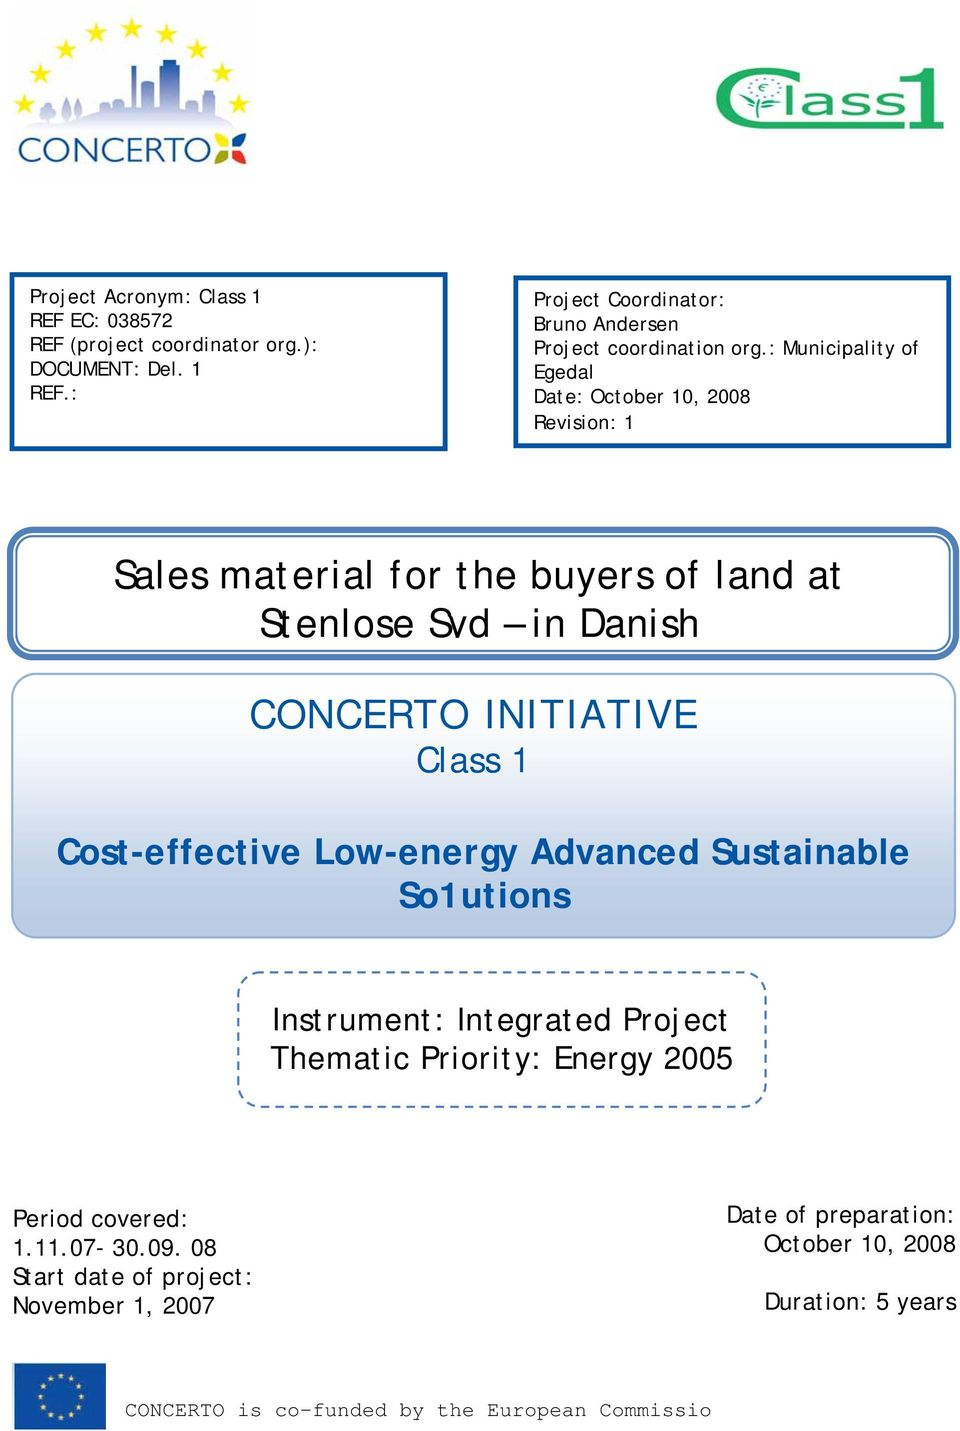 Cost-effective Low-energy Advanced Sustainable So1utions Instrument: Integrated Project Thematic Priority: Energy 2005 Period covered: 1.11.07-30.09.